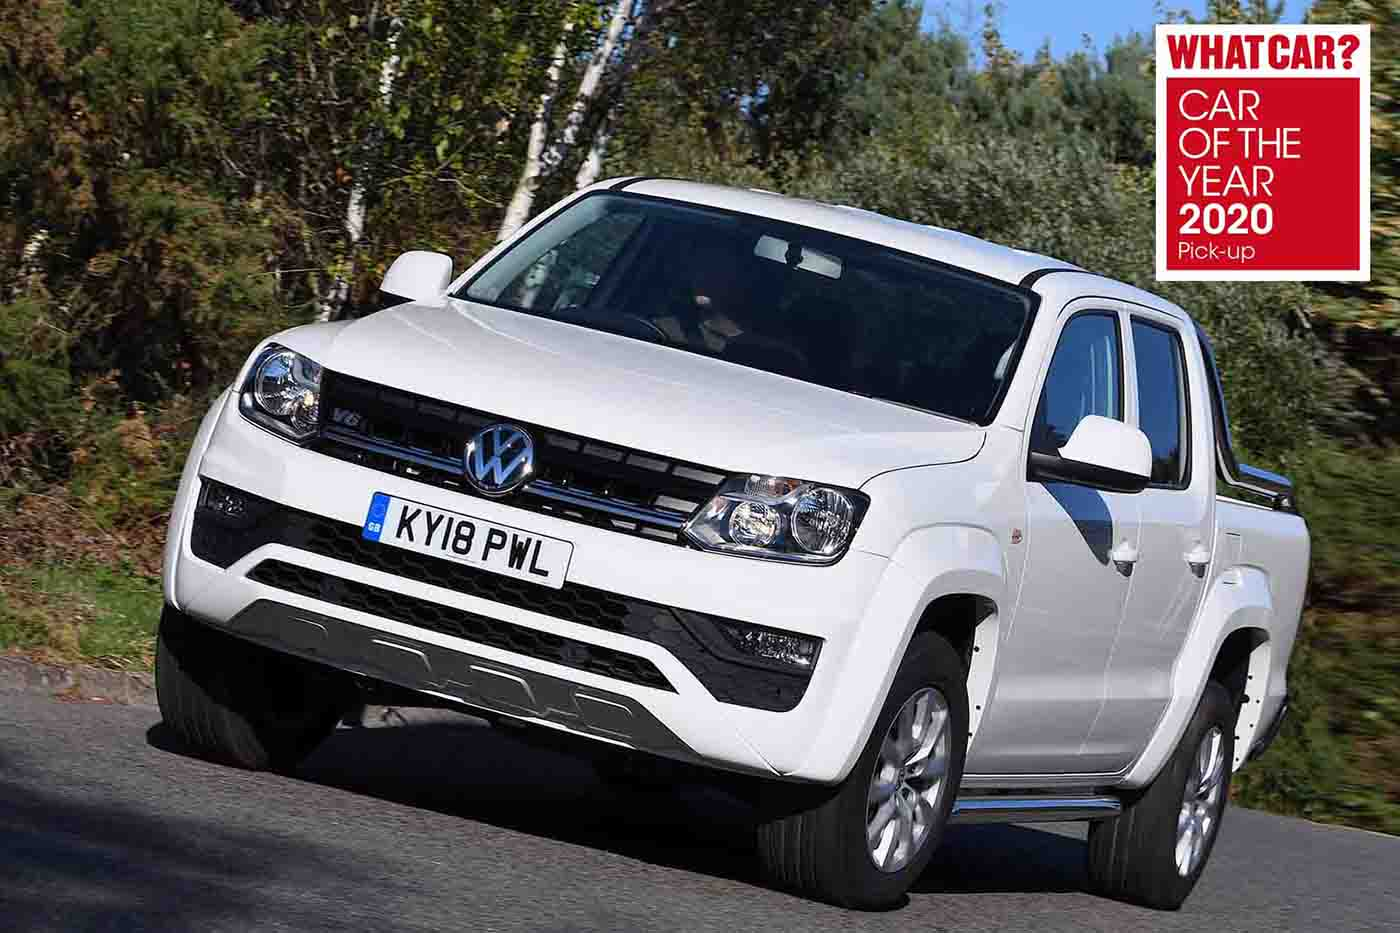 Whatcar? car of the year award Volkswagen Amarok